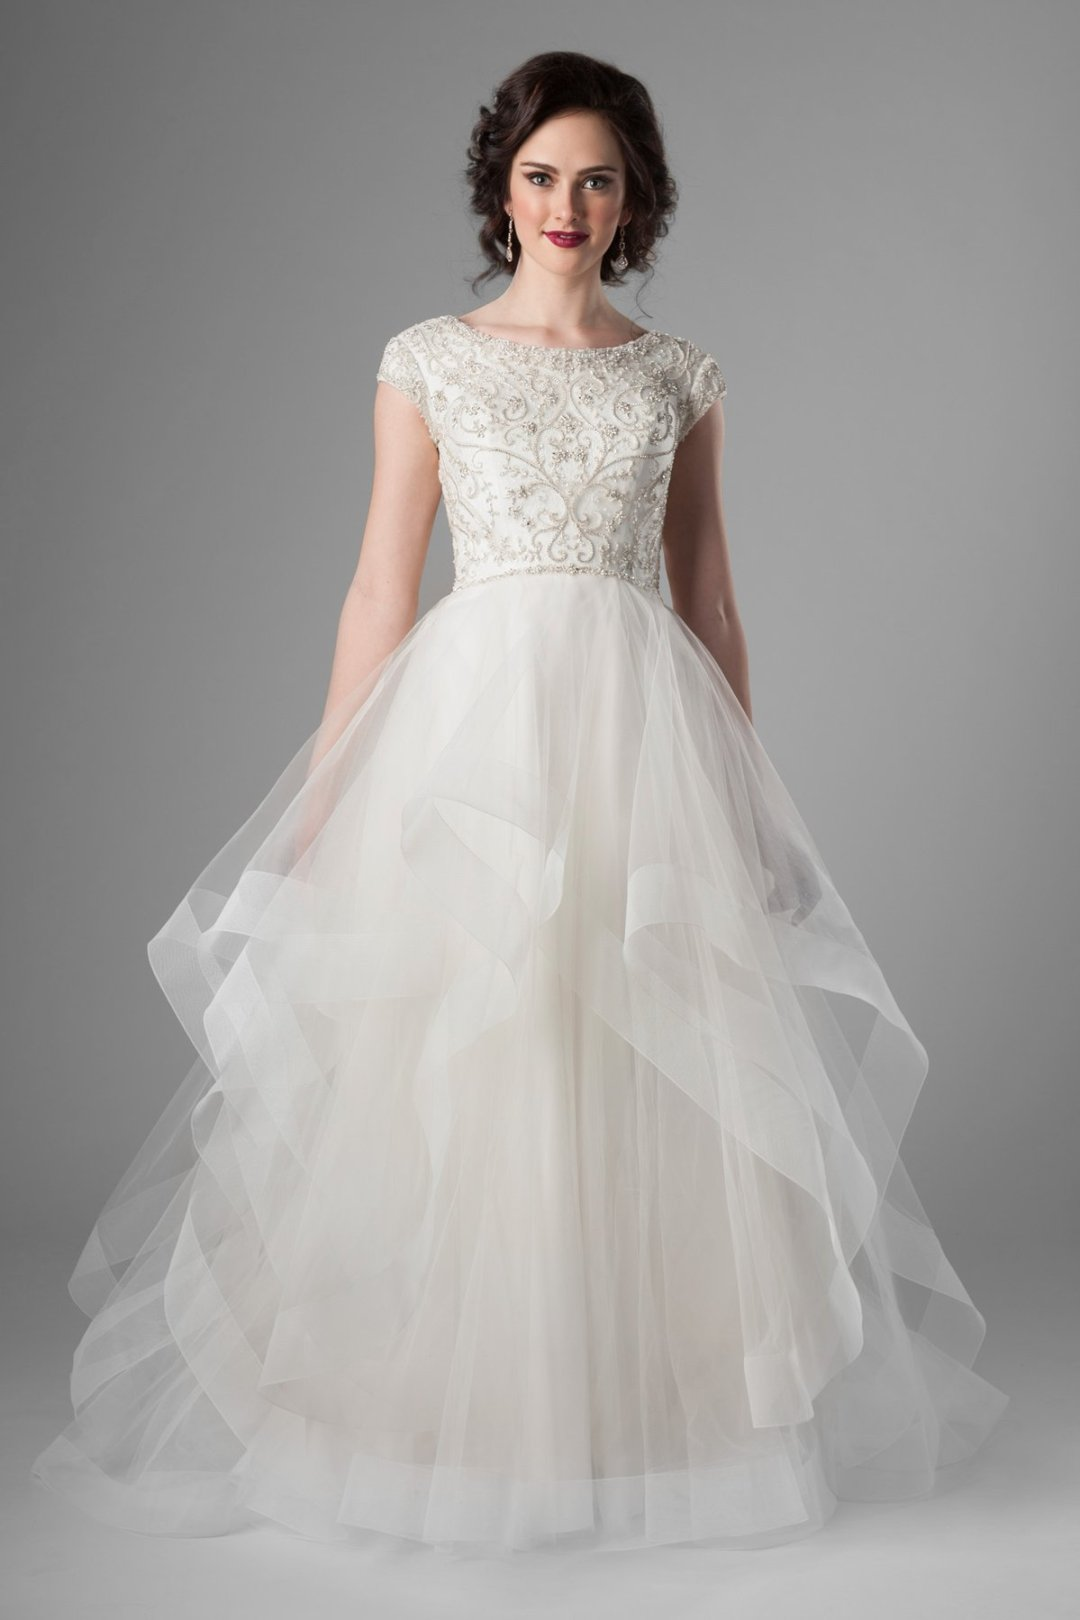 25 Modest Ball Gown Wedding Dresses - 3